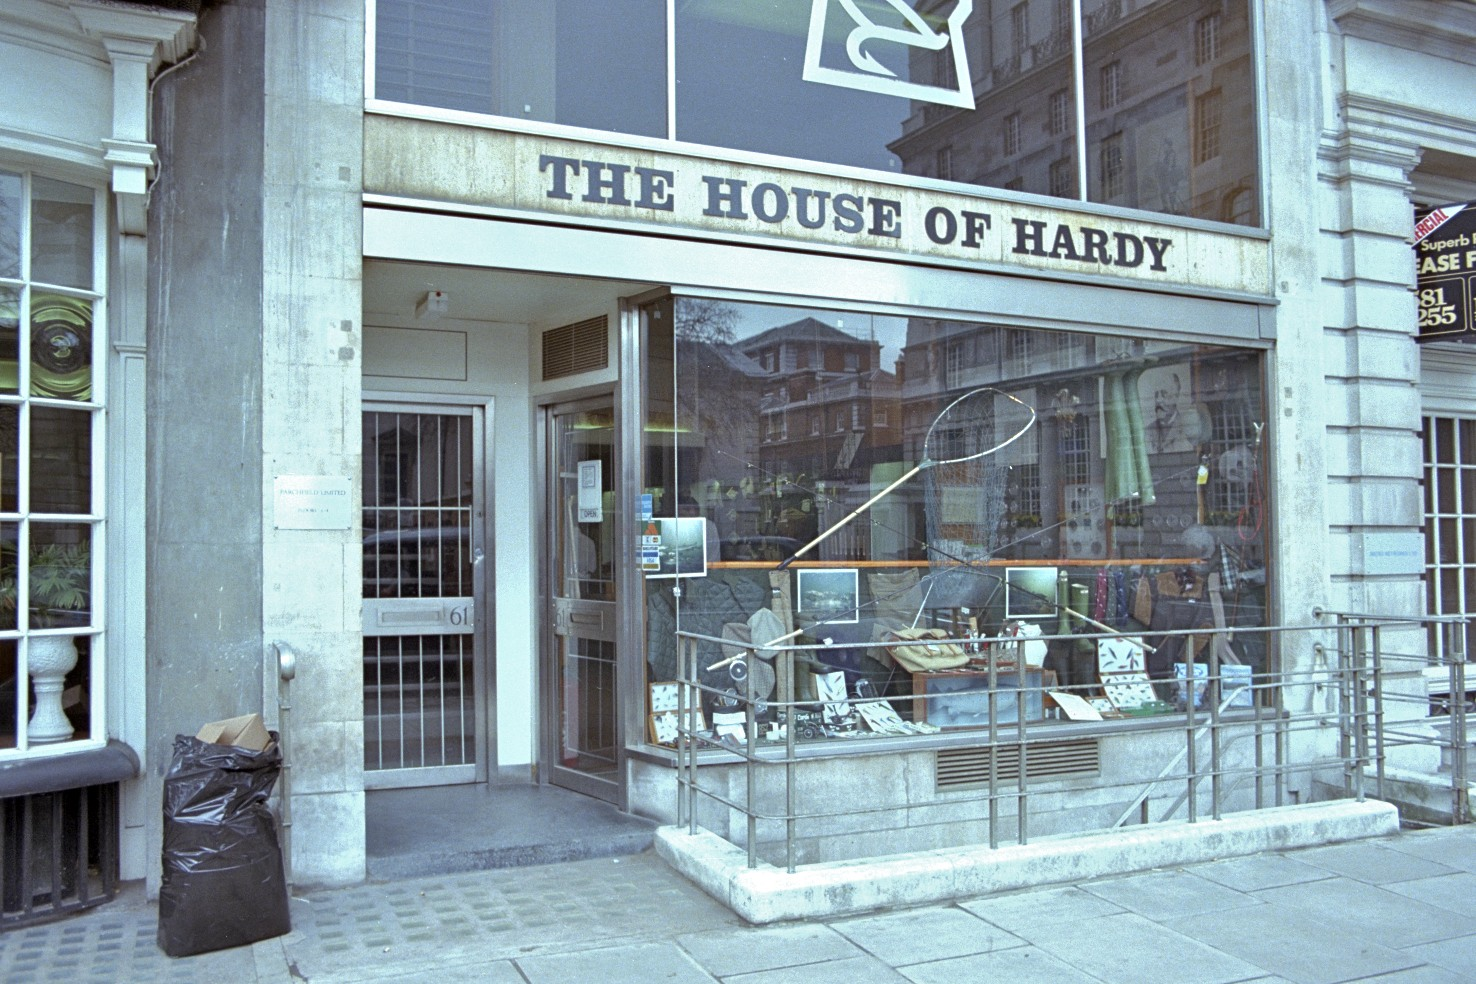 House of Hardy, London